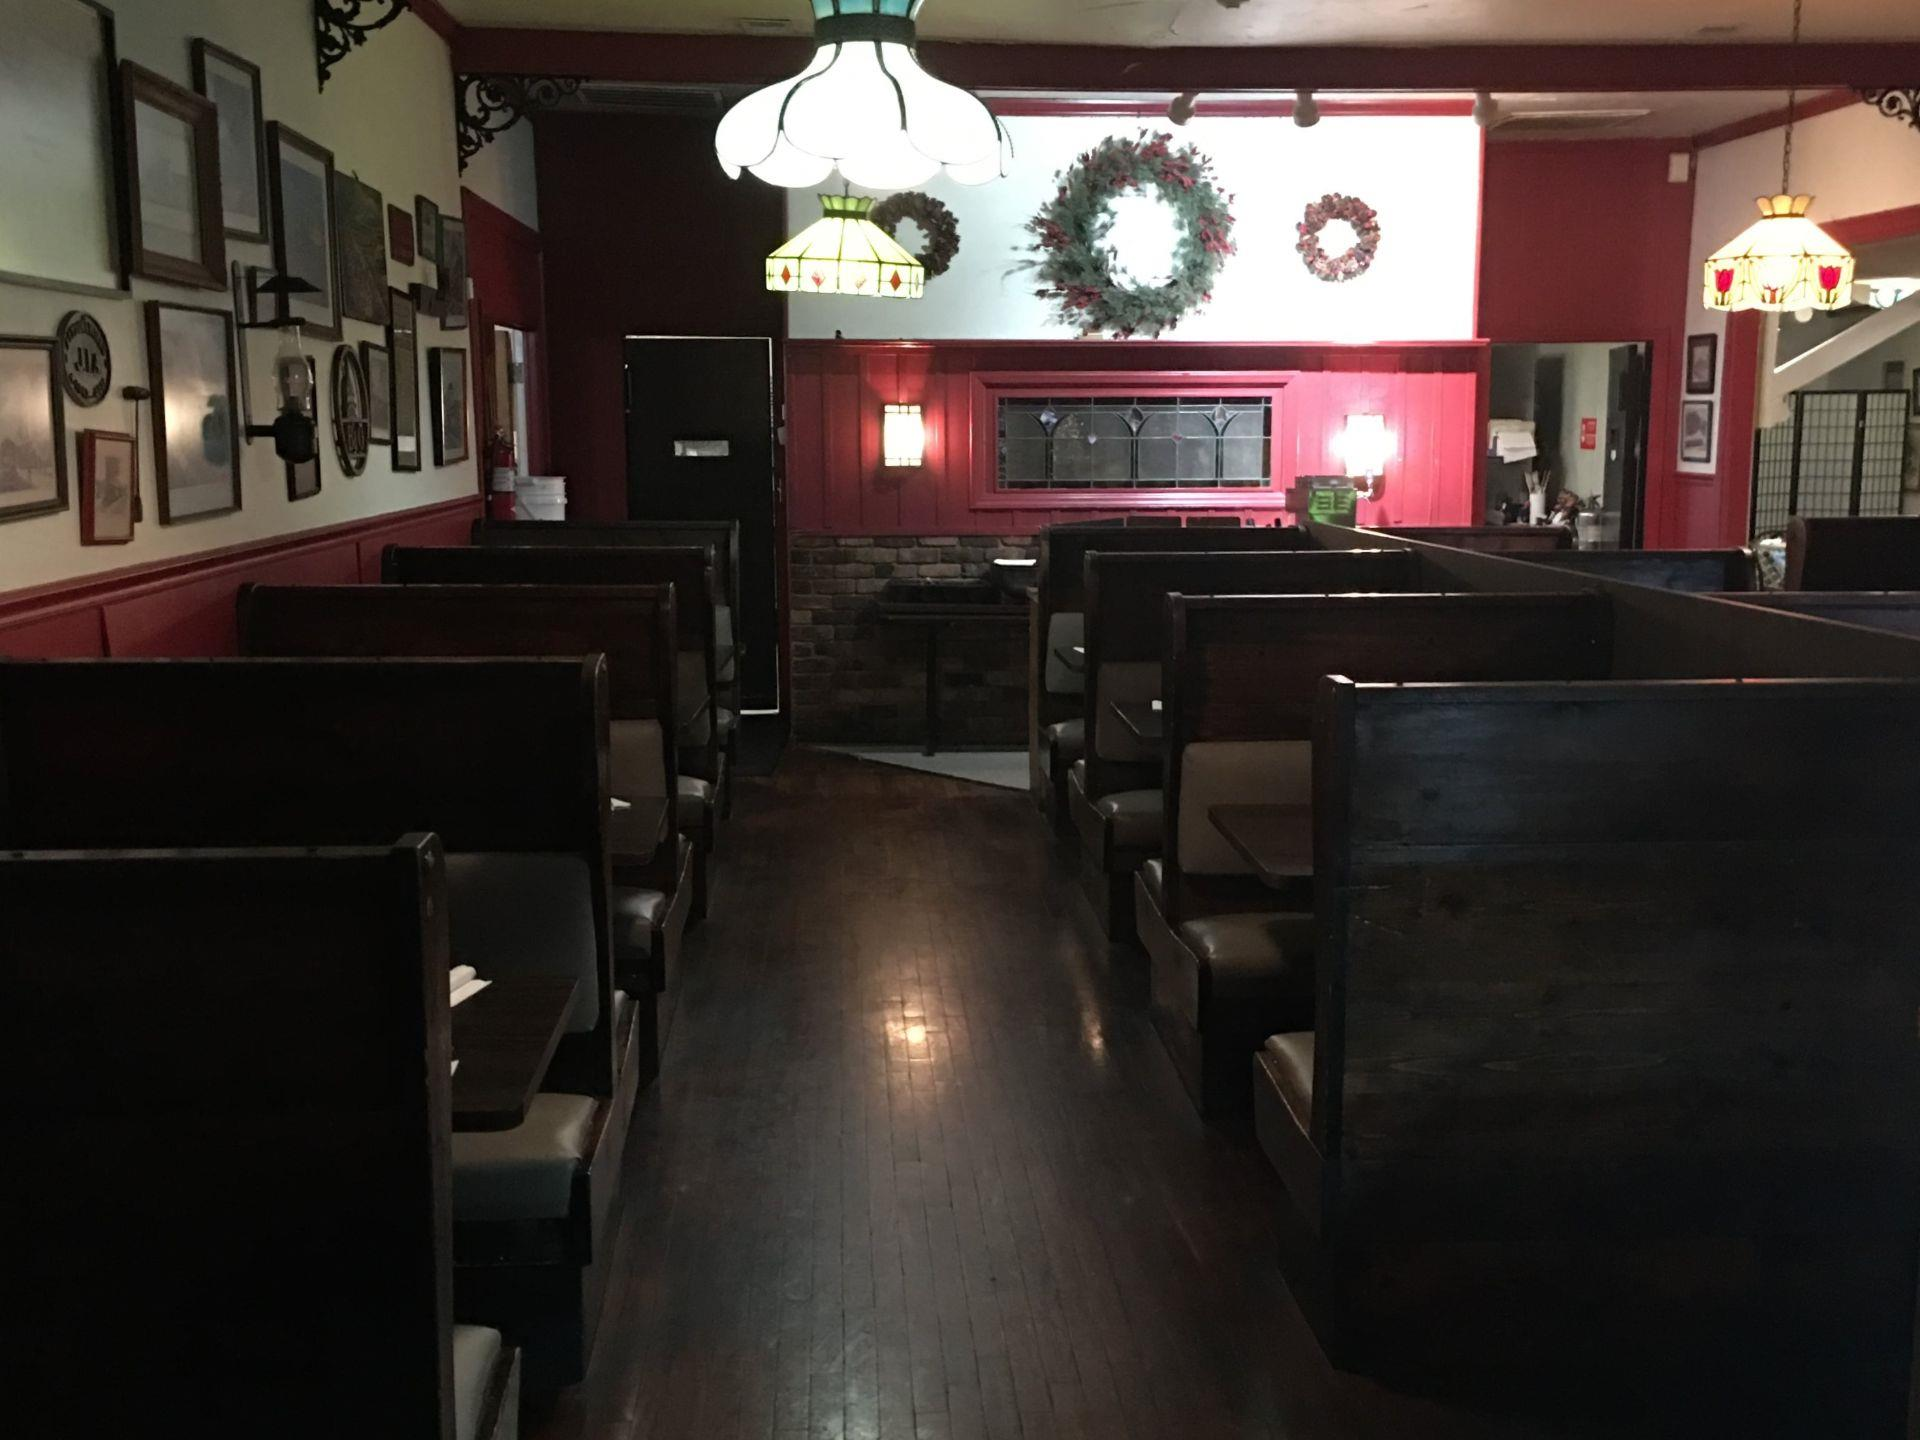 Interior dining area with booths and pictures hanging on the walls